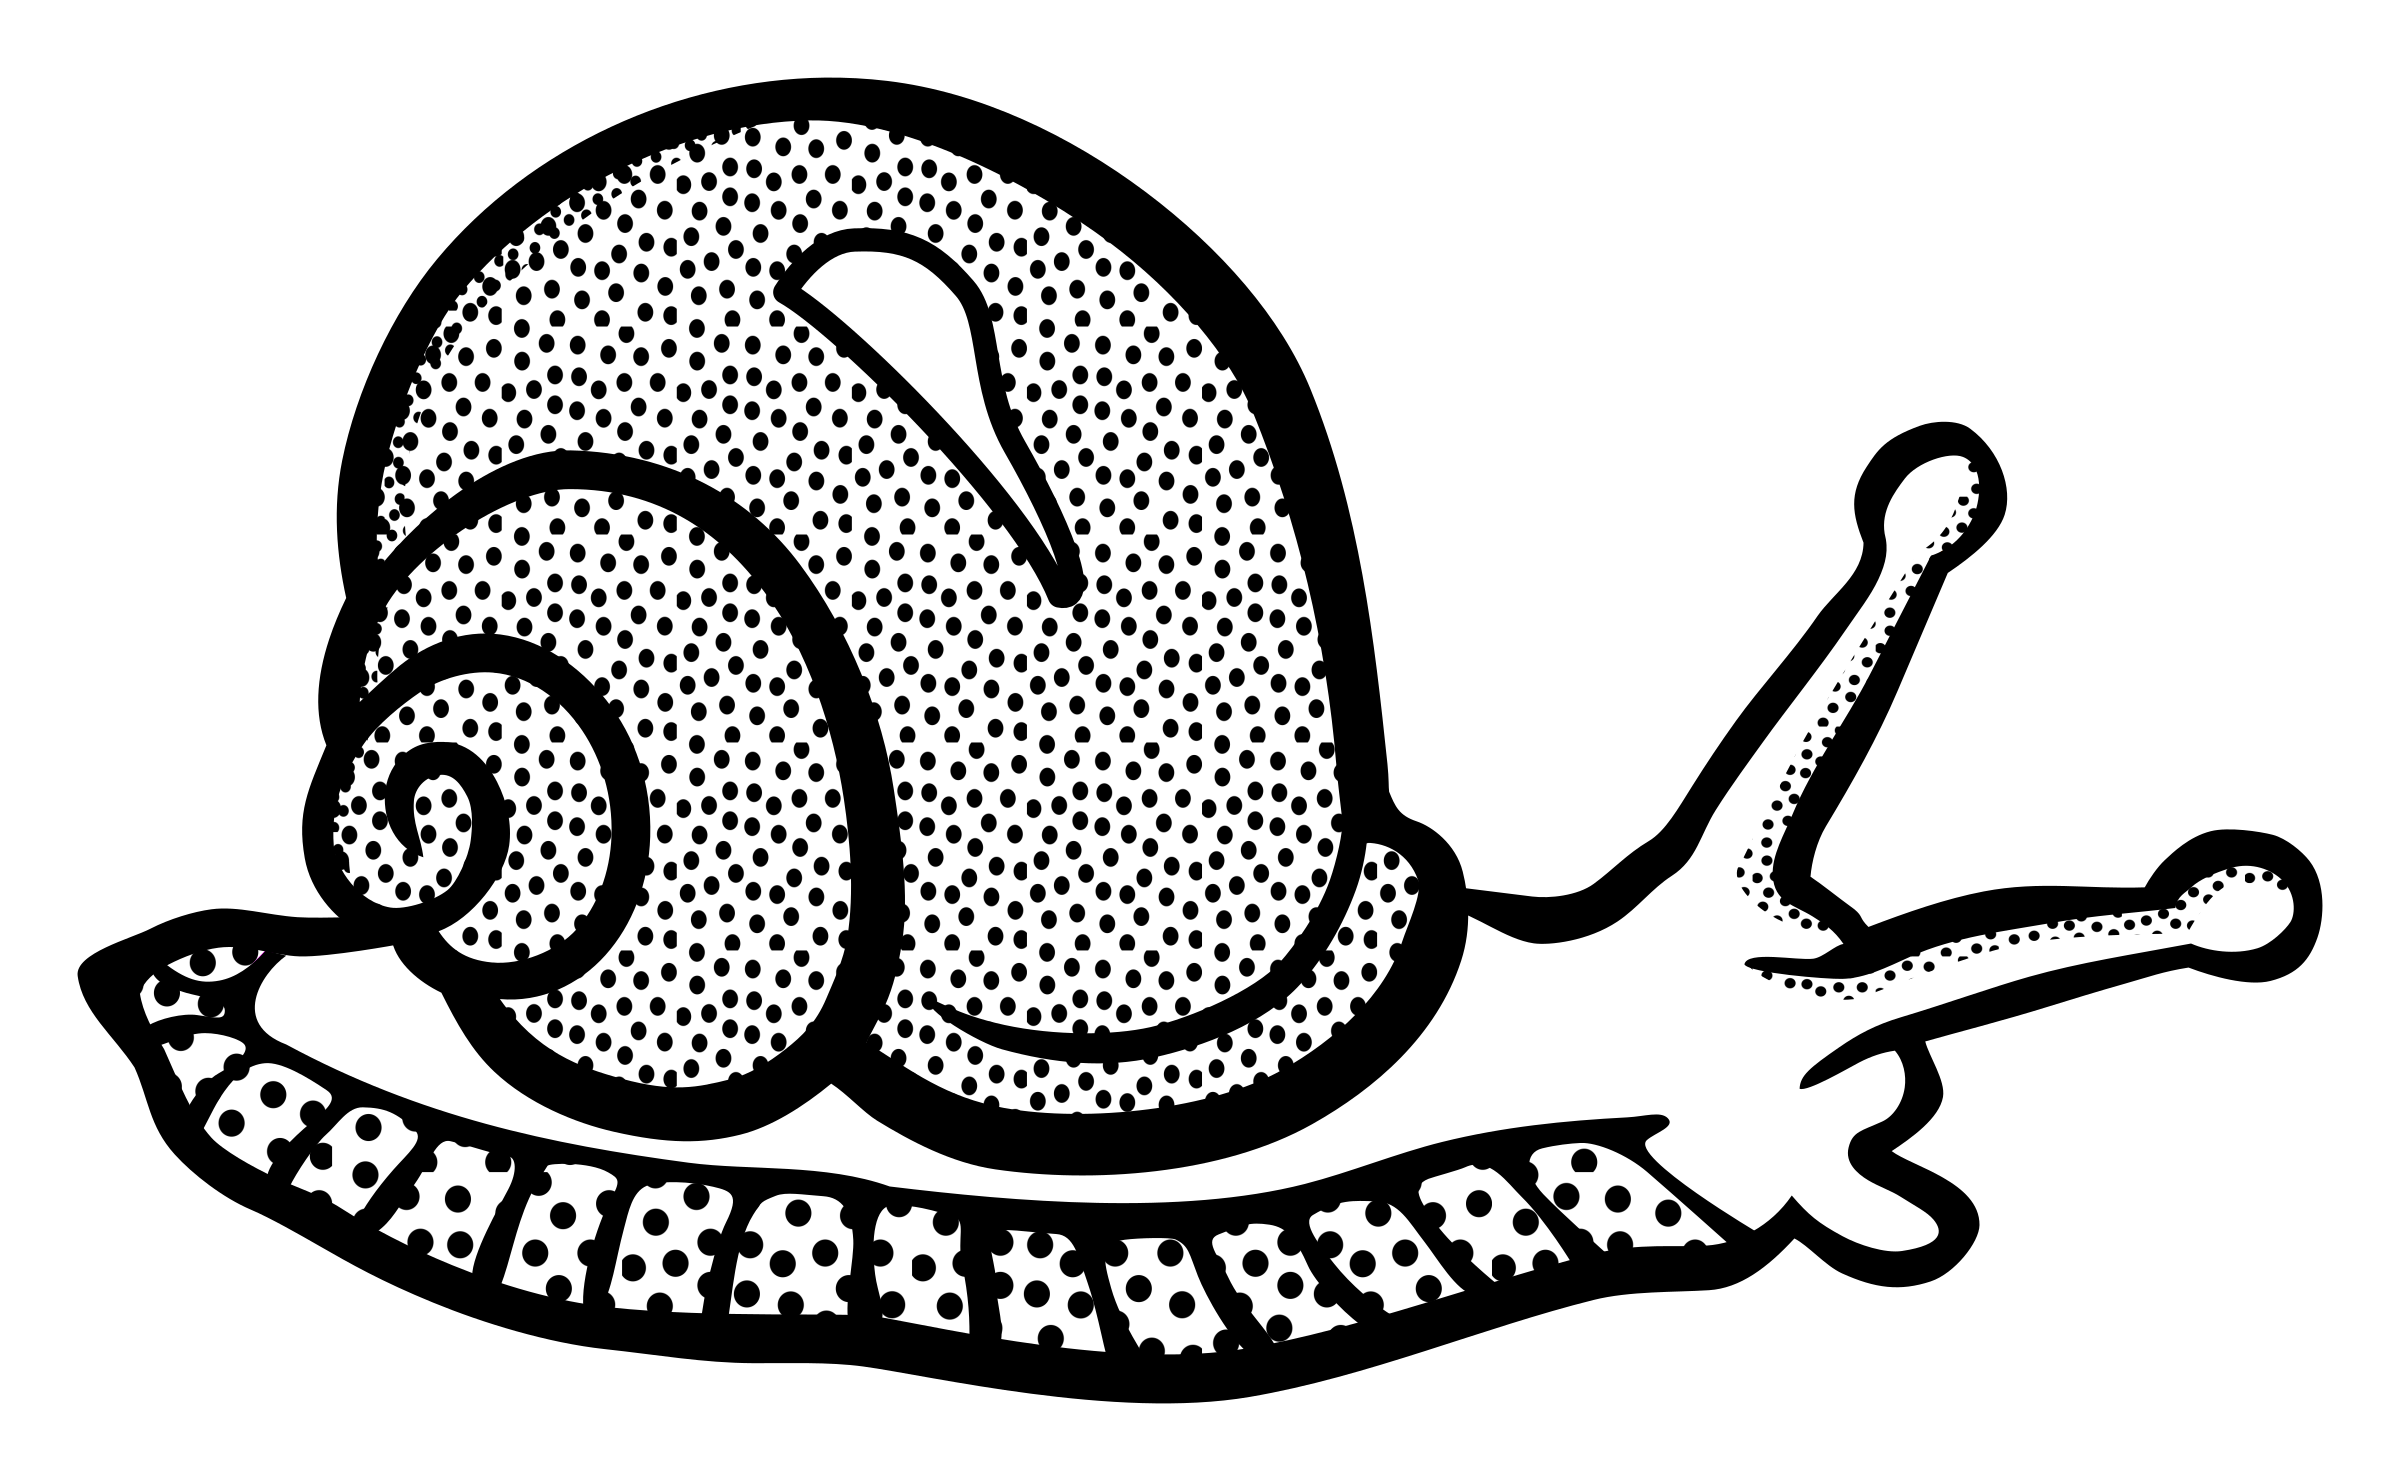 PNG Snail Black And White - 86826